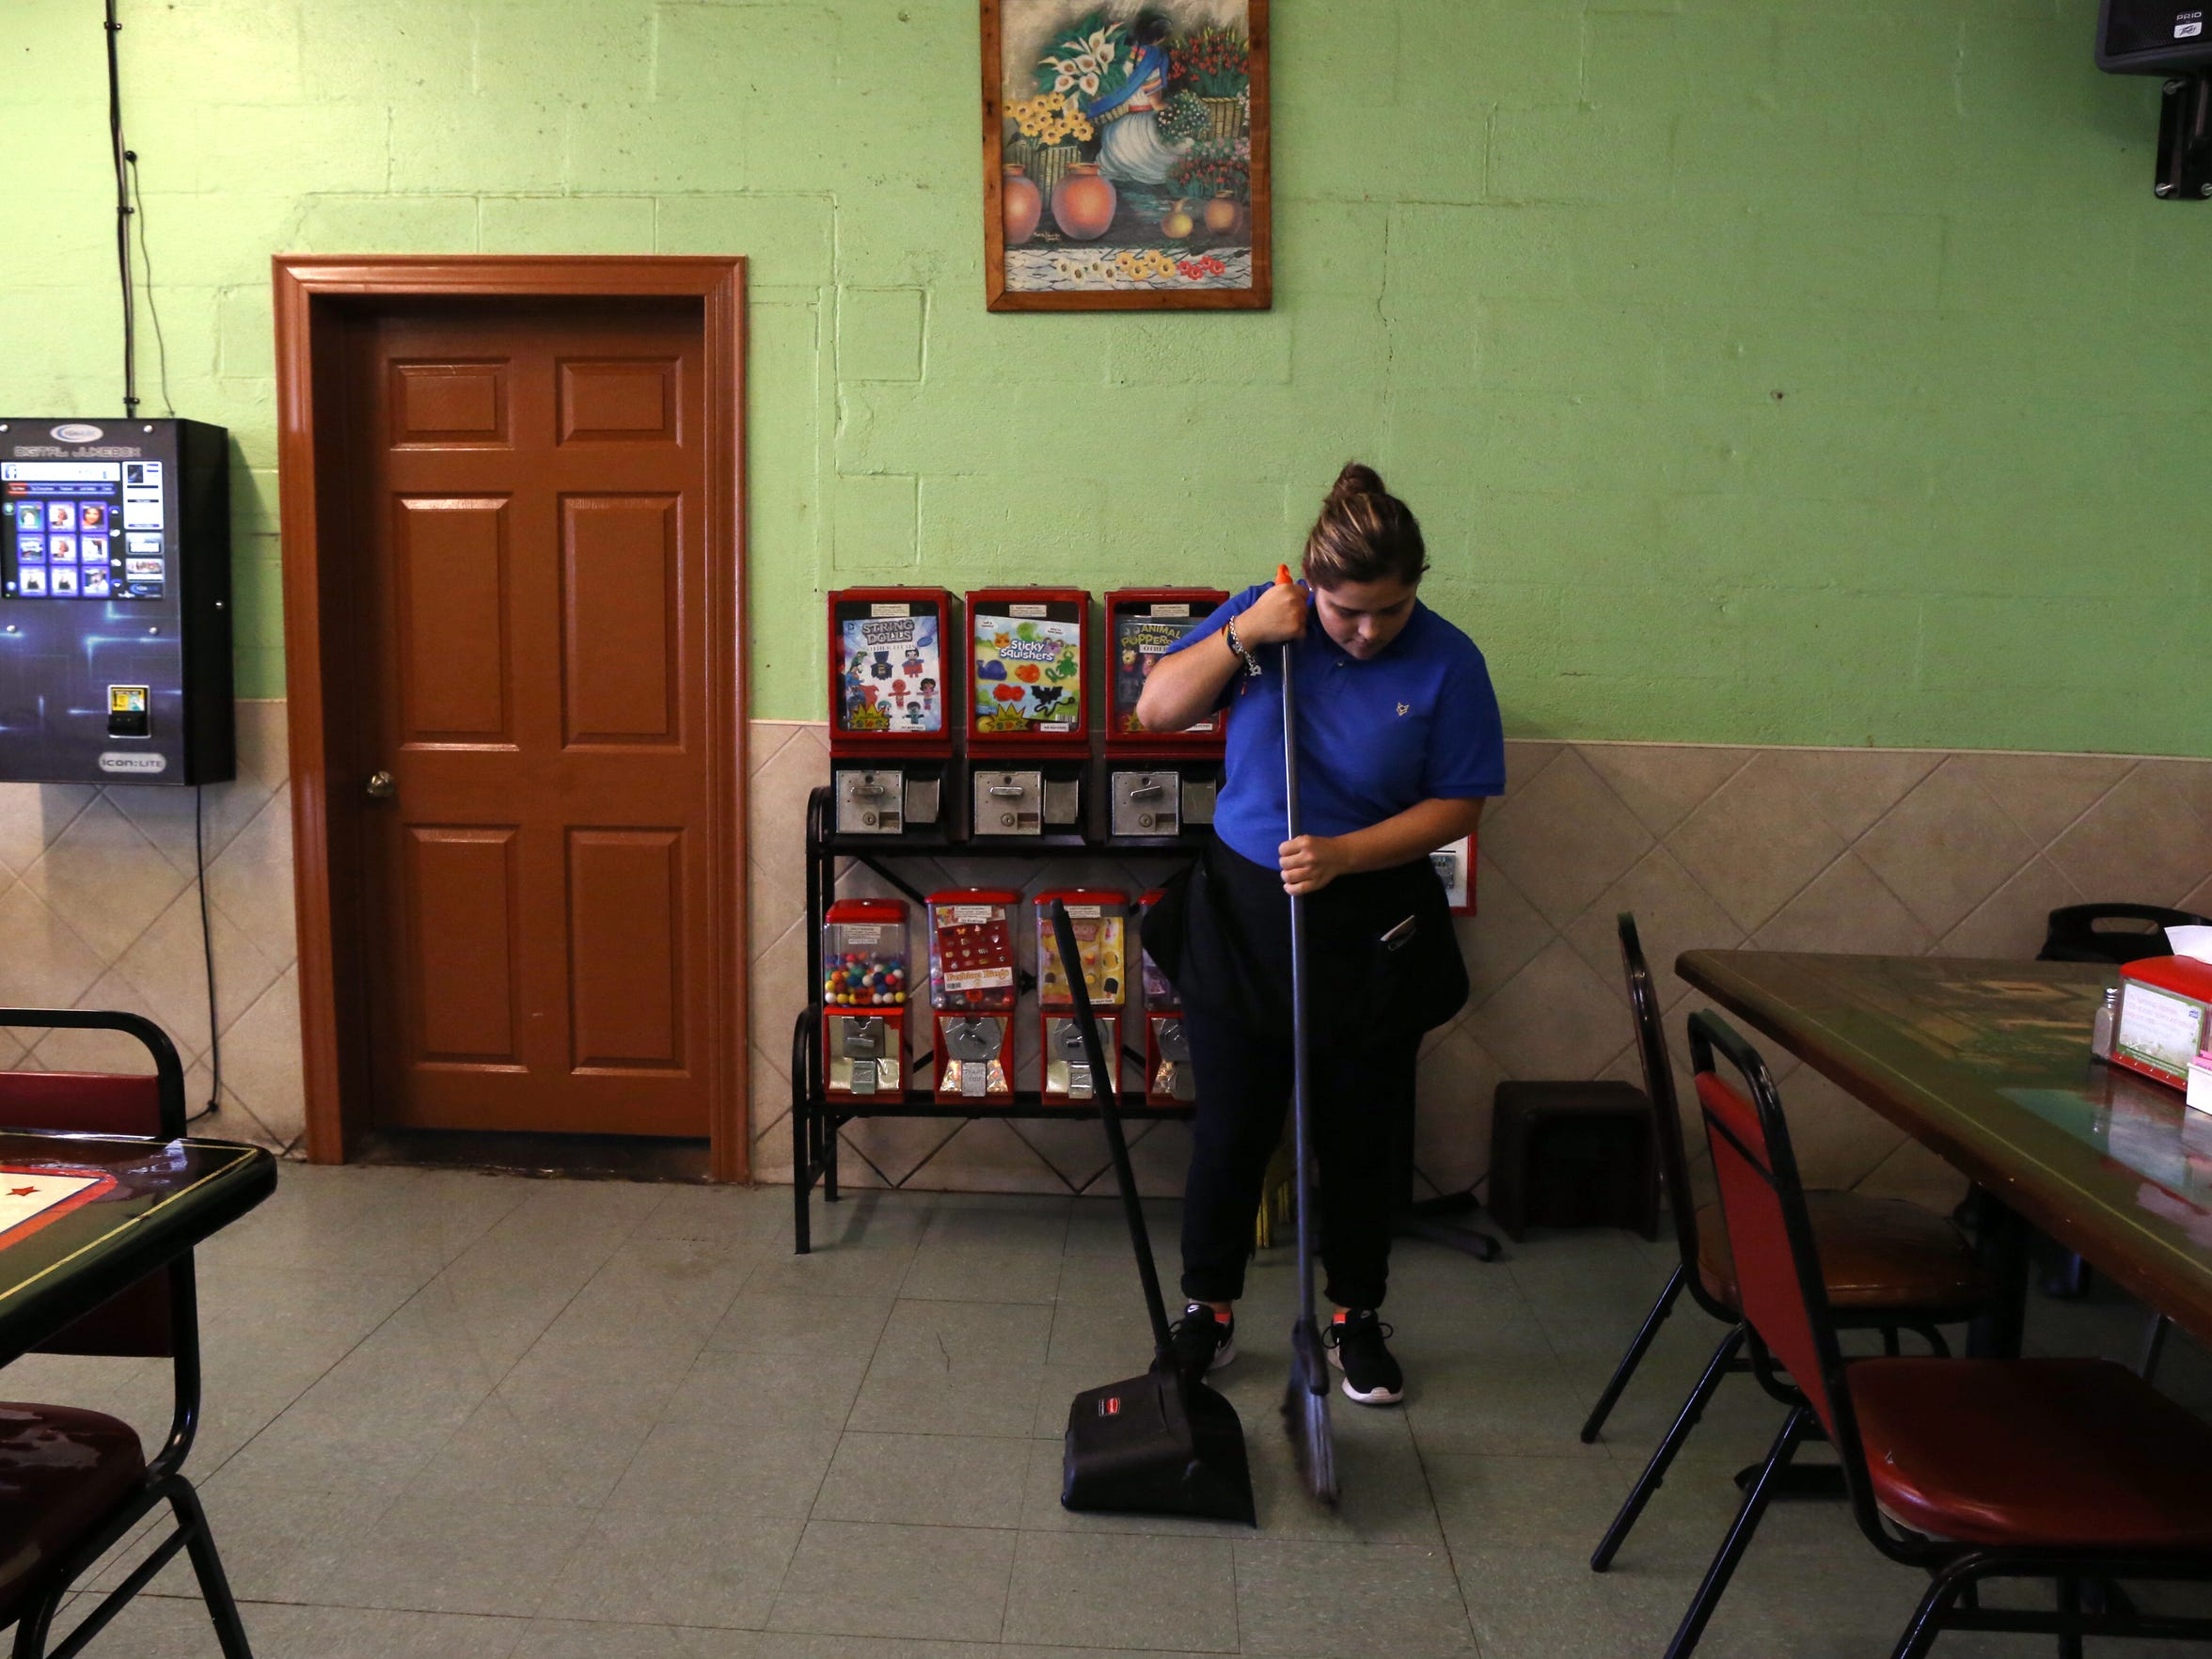 Claudia Jimenez, 19, cleans up the restaurant where she works on October 18, 2017. Jimenez hopes sharing her experience will help other DACA recipients, who may have the same fears and worries, will come forward and ignite change.